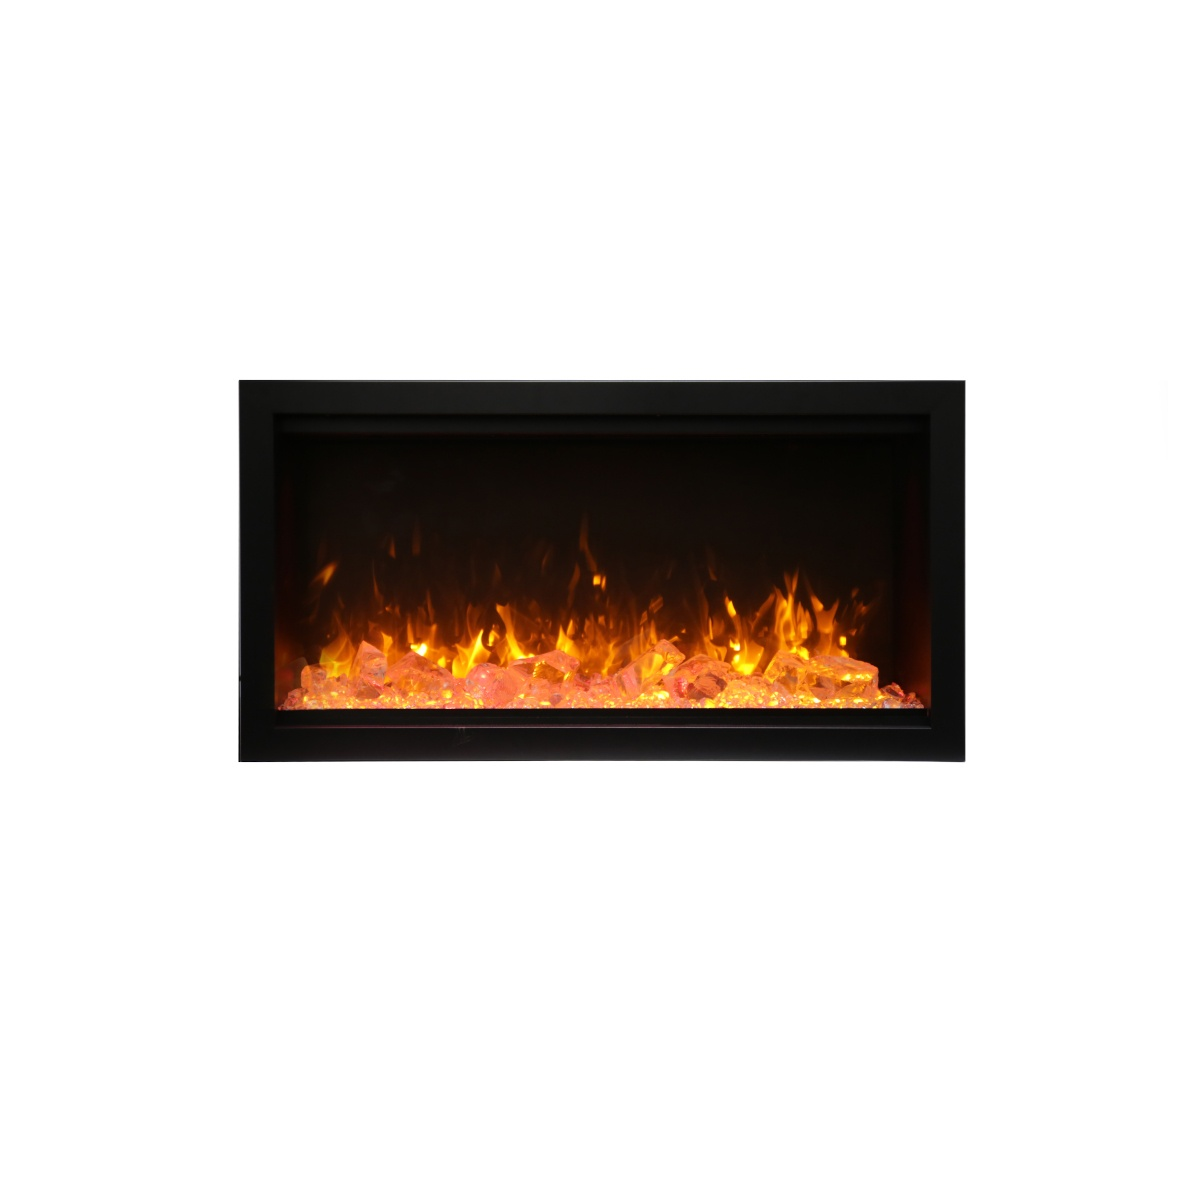 amantii SYM-34-XT extra tall contemporary electric fireplace wall insert with glass embers and orange flames